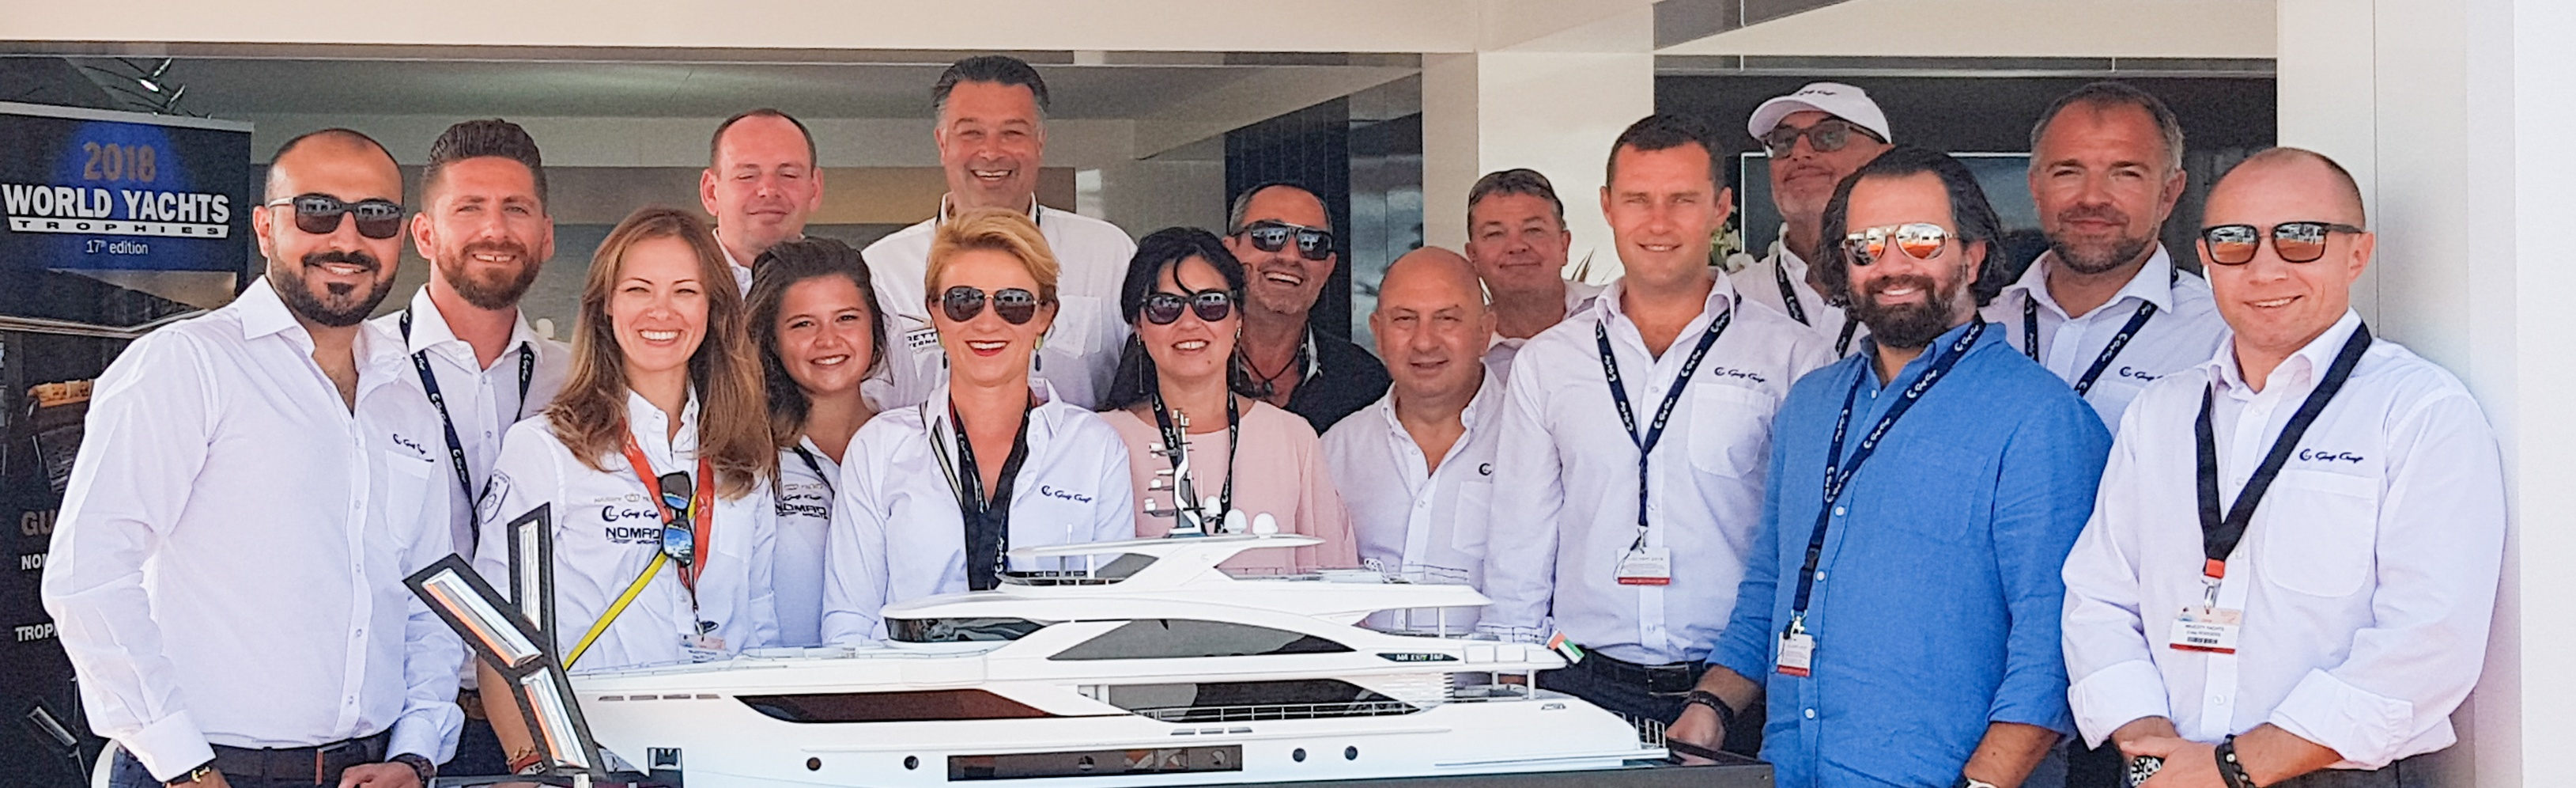 Gulf-Craft-team,-Cannes-Yachting-Festival